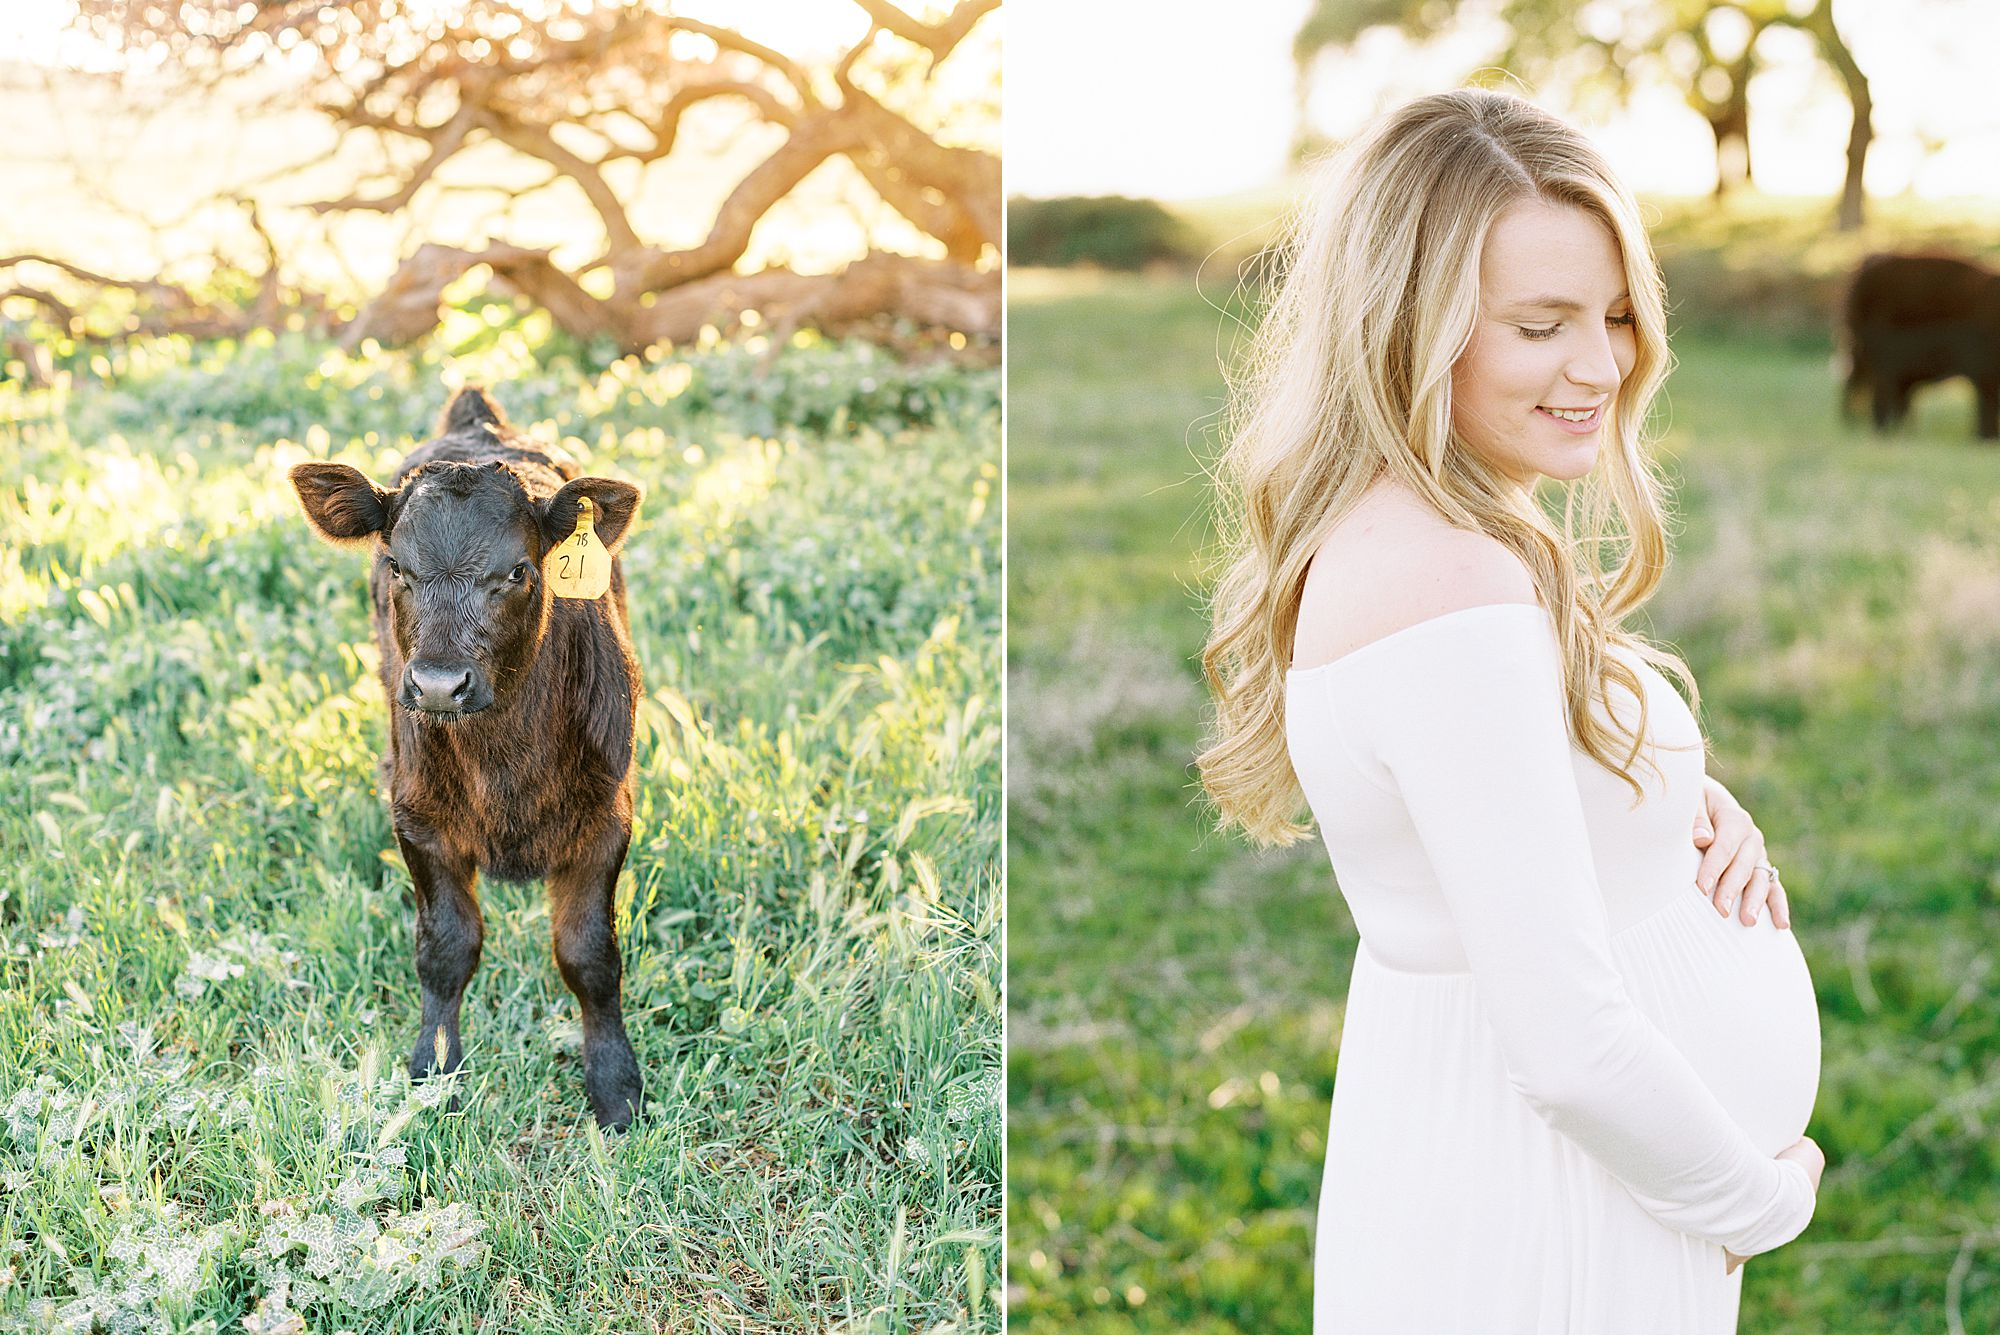 Sheridan Maternity Session - Lexie and Nick - Sacramento Maternity Photos by Ashley Baumgartner - Farmland, 4H Maternity with Cows_0011.jpg